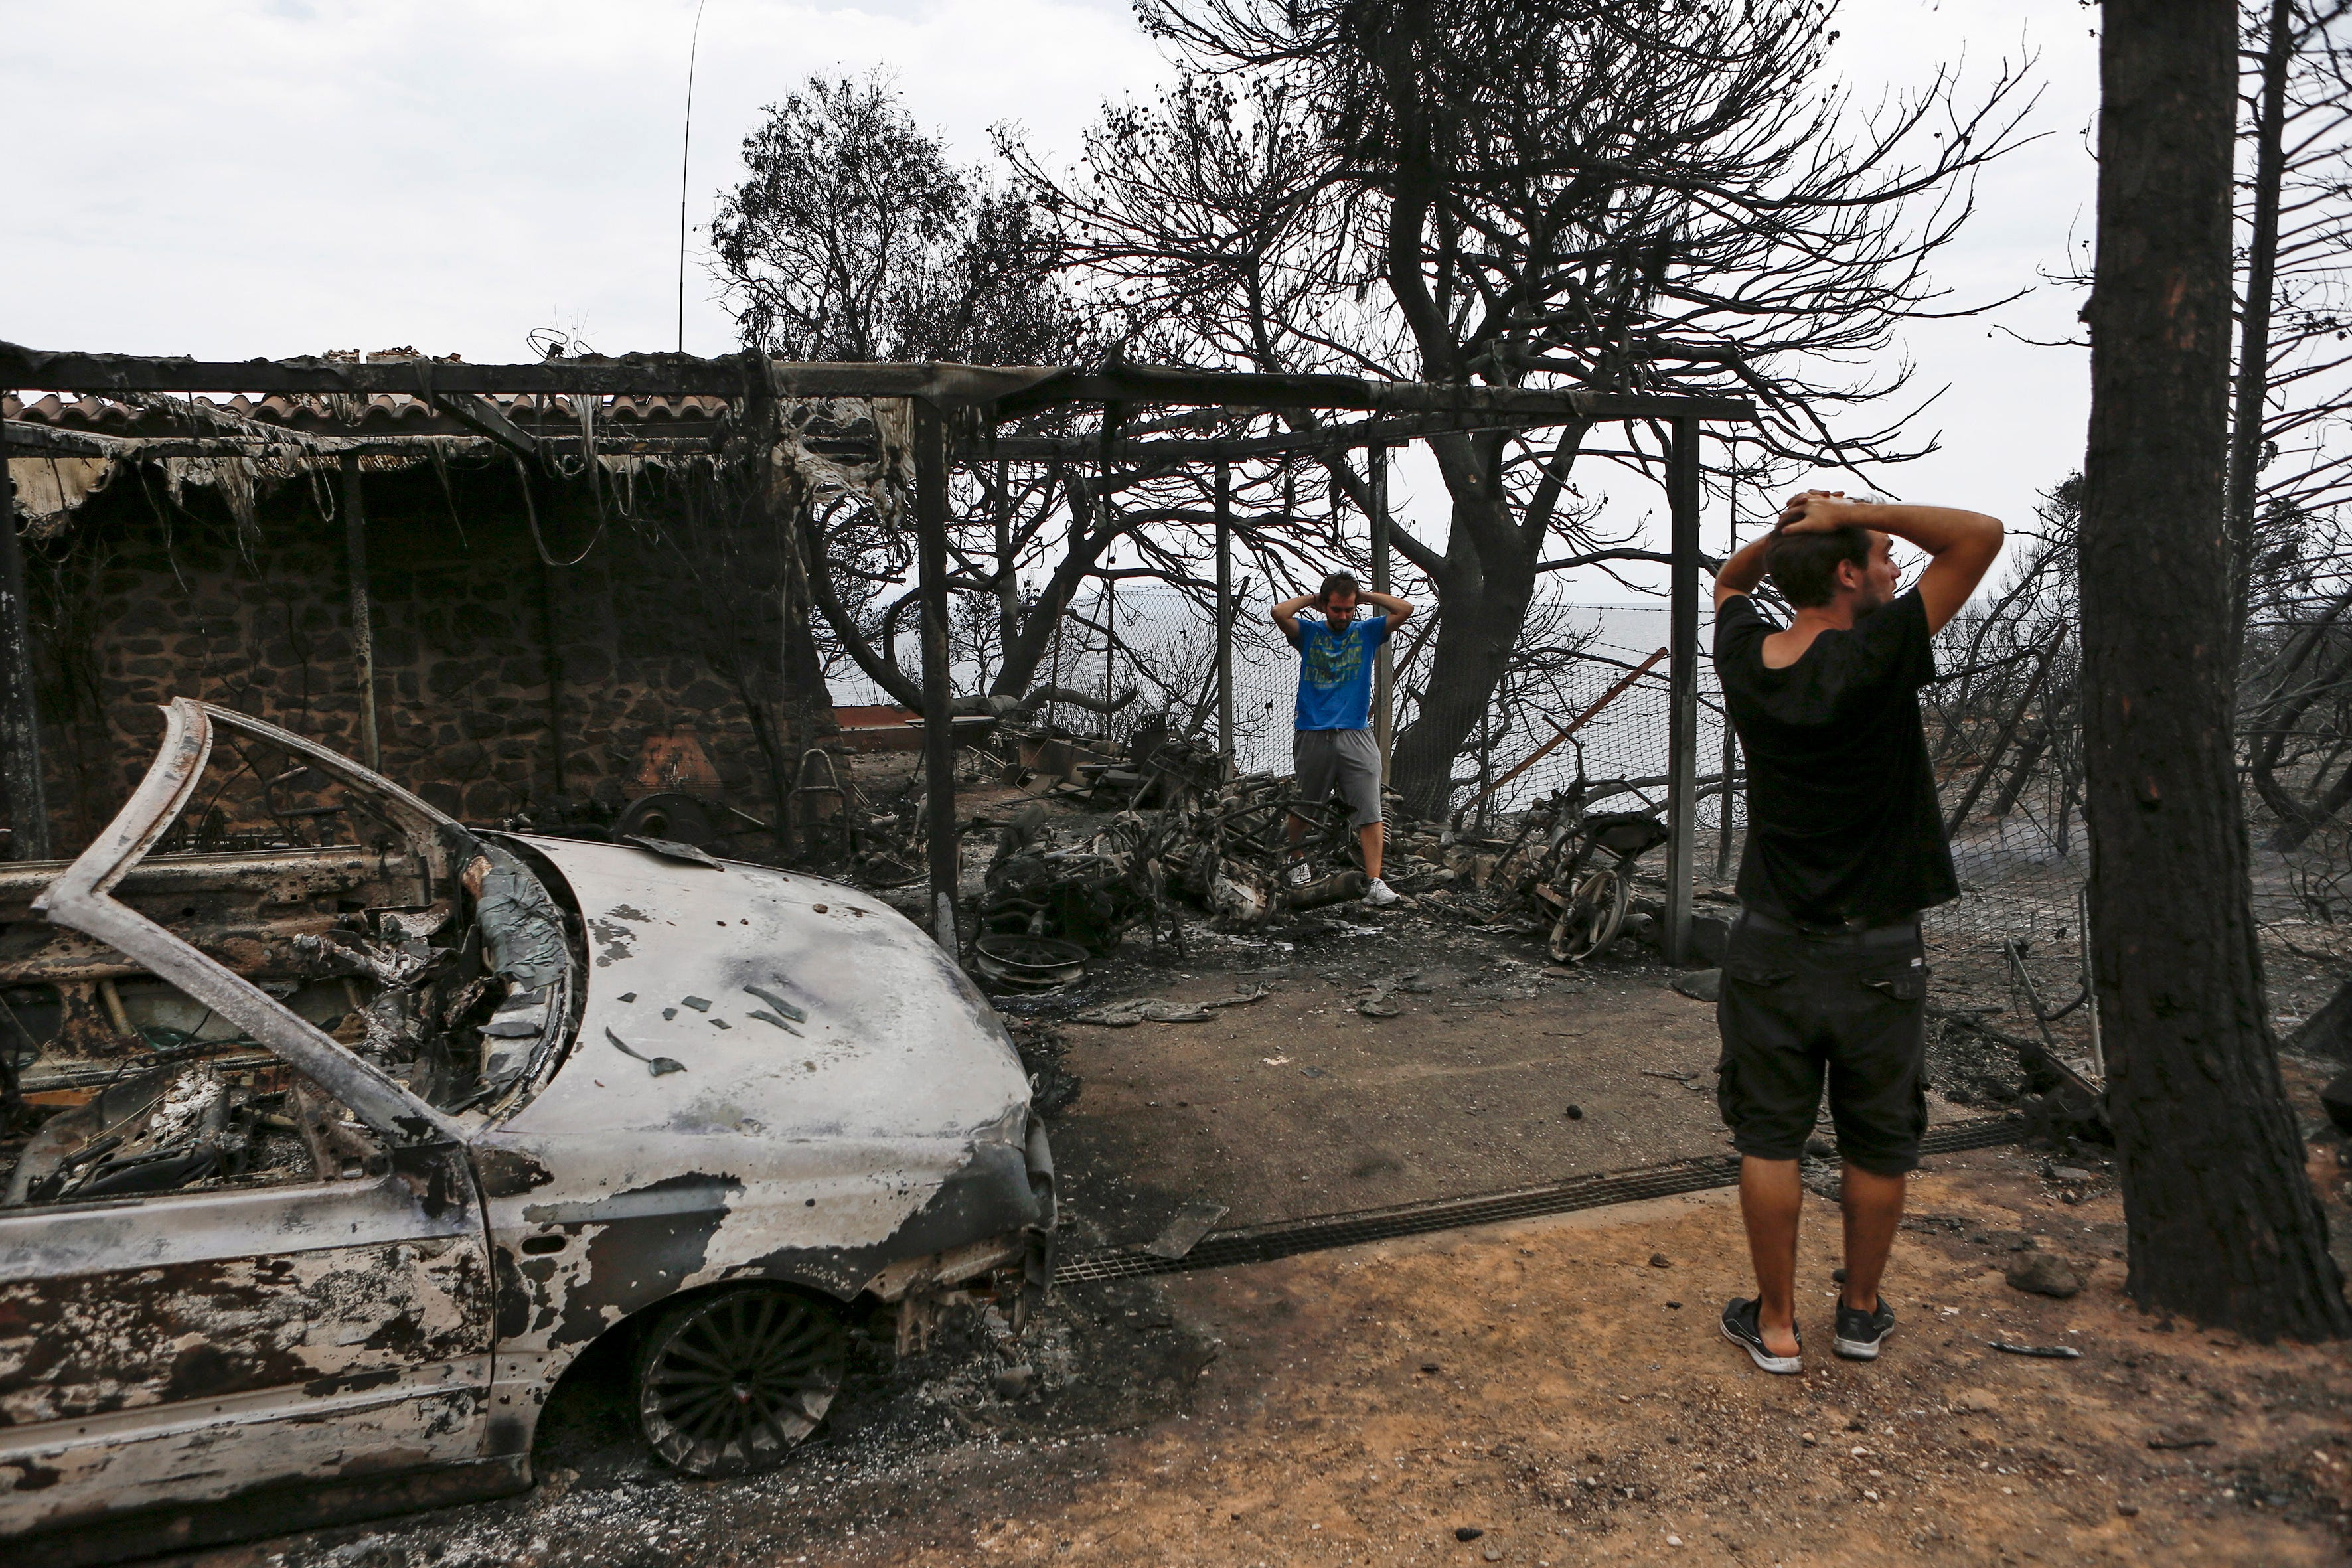 Residents react as they look at their burned house following a forest fire in Mati a northeast suburb of Athens, Greece. At least 50 people have lost their lives in wildfires that broke out in eastern Attica and there are fears of more casualties.